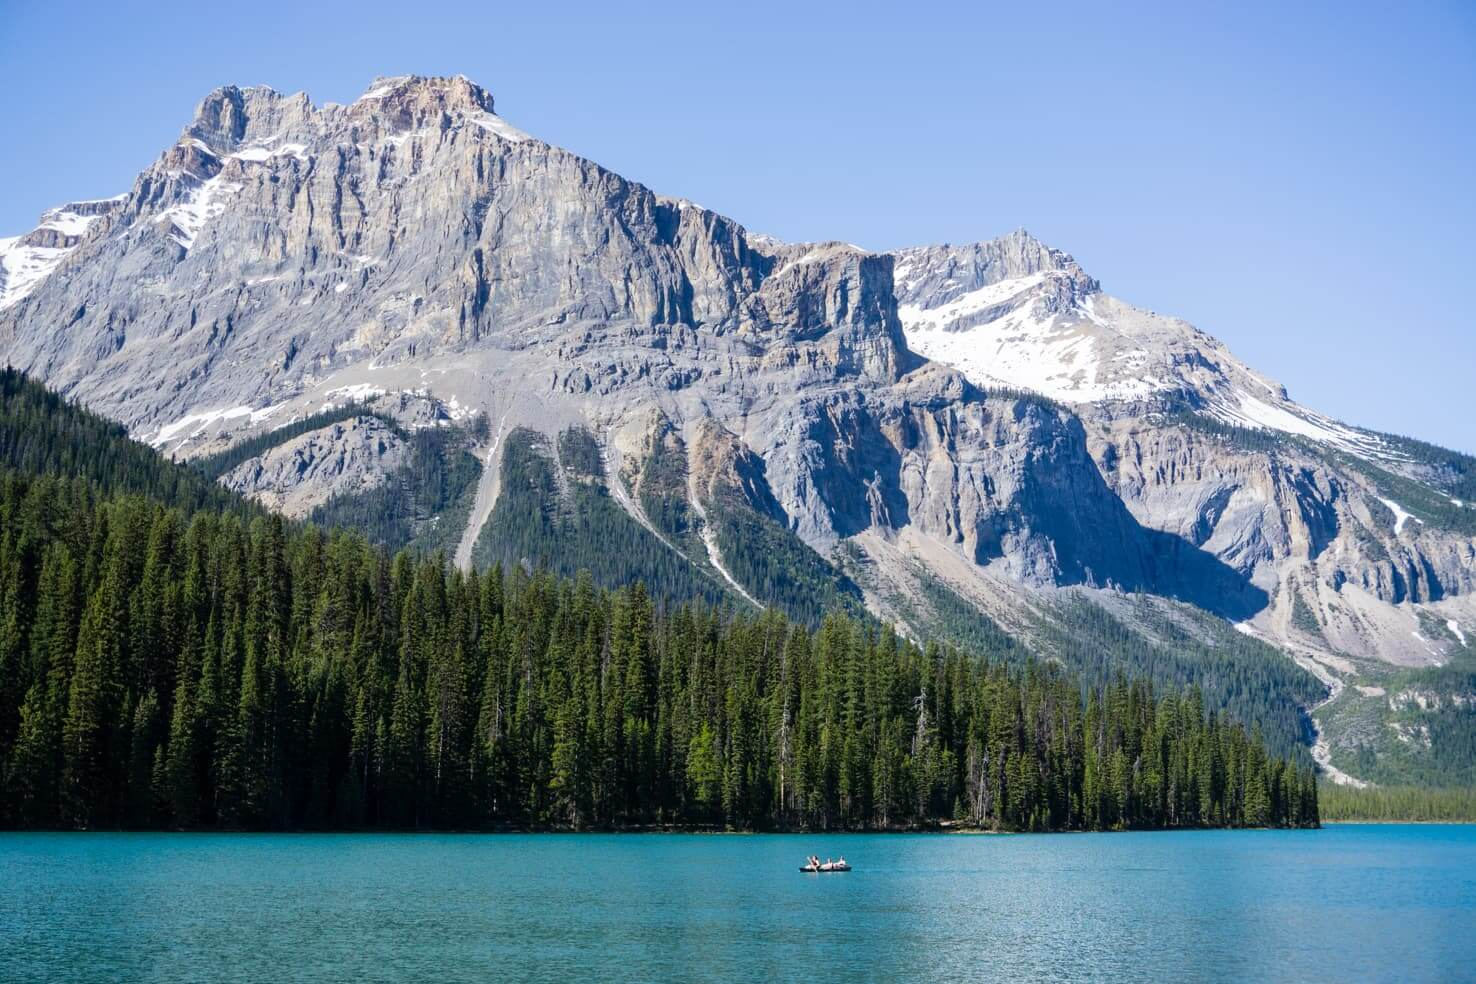 100 best things to do in Banff National Park, Canada - Relax at Emerald Lake